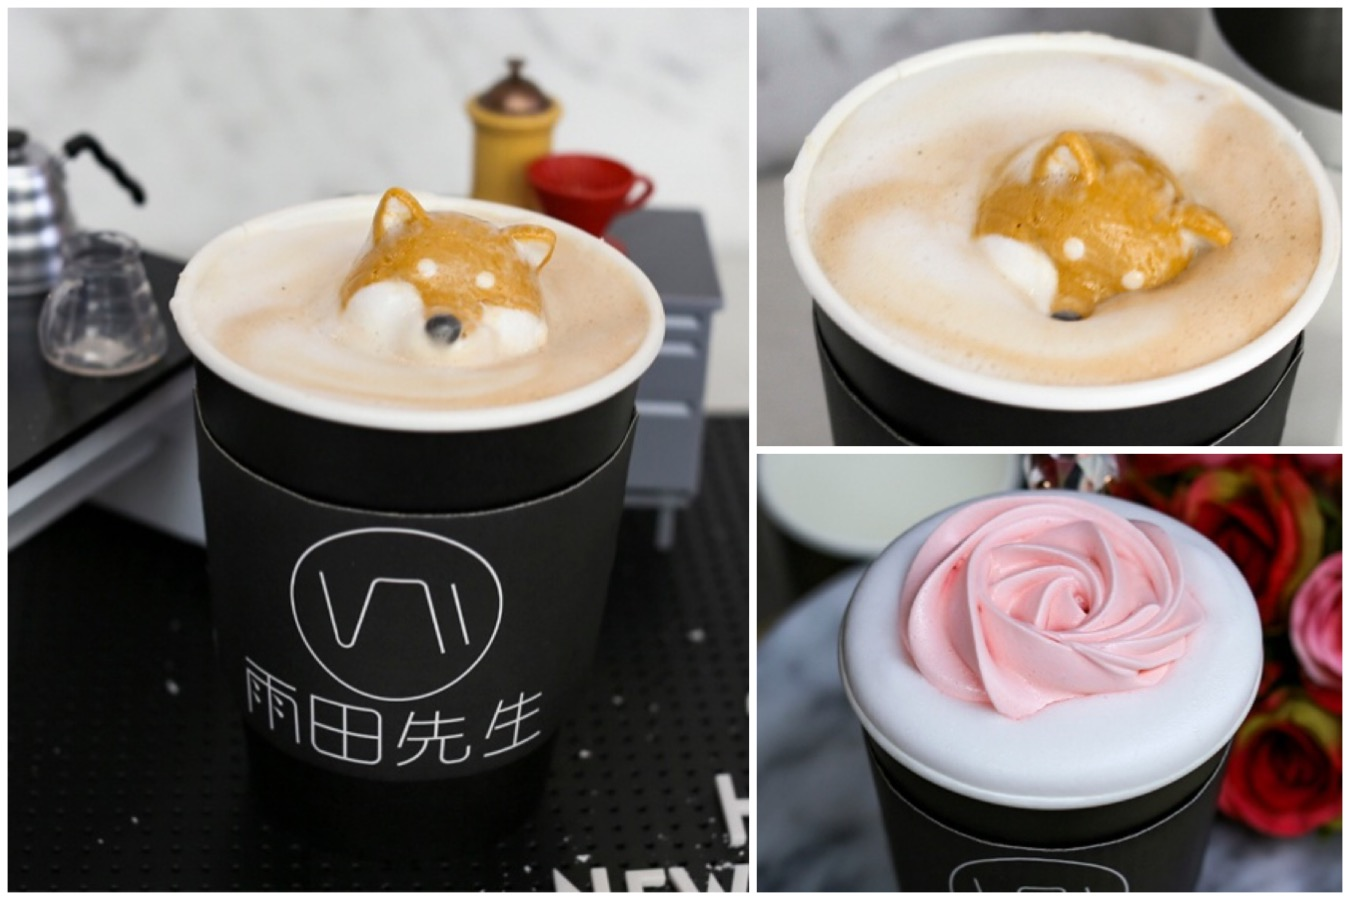 Mr R Drinks 雨田先生手冲饮品吧 - Instagrammable Shiba Inu And Rose Milk Tea, At Zhongxiao East Road Taipei